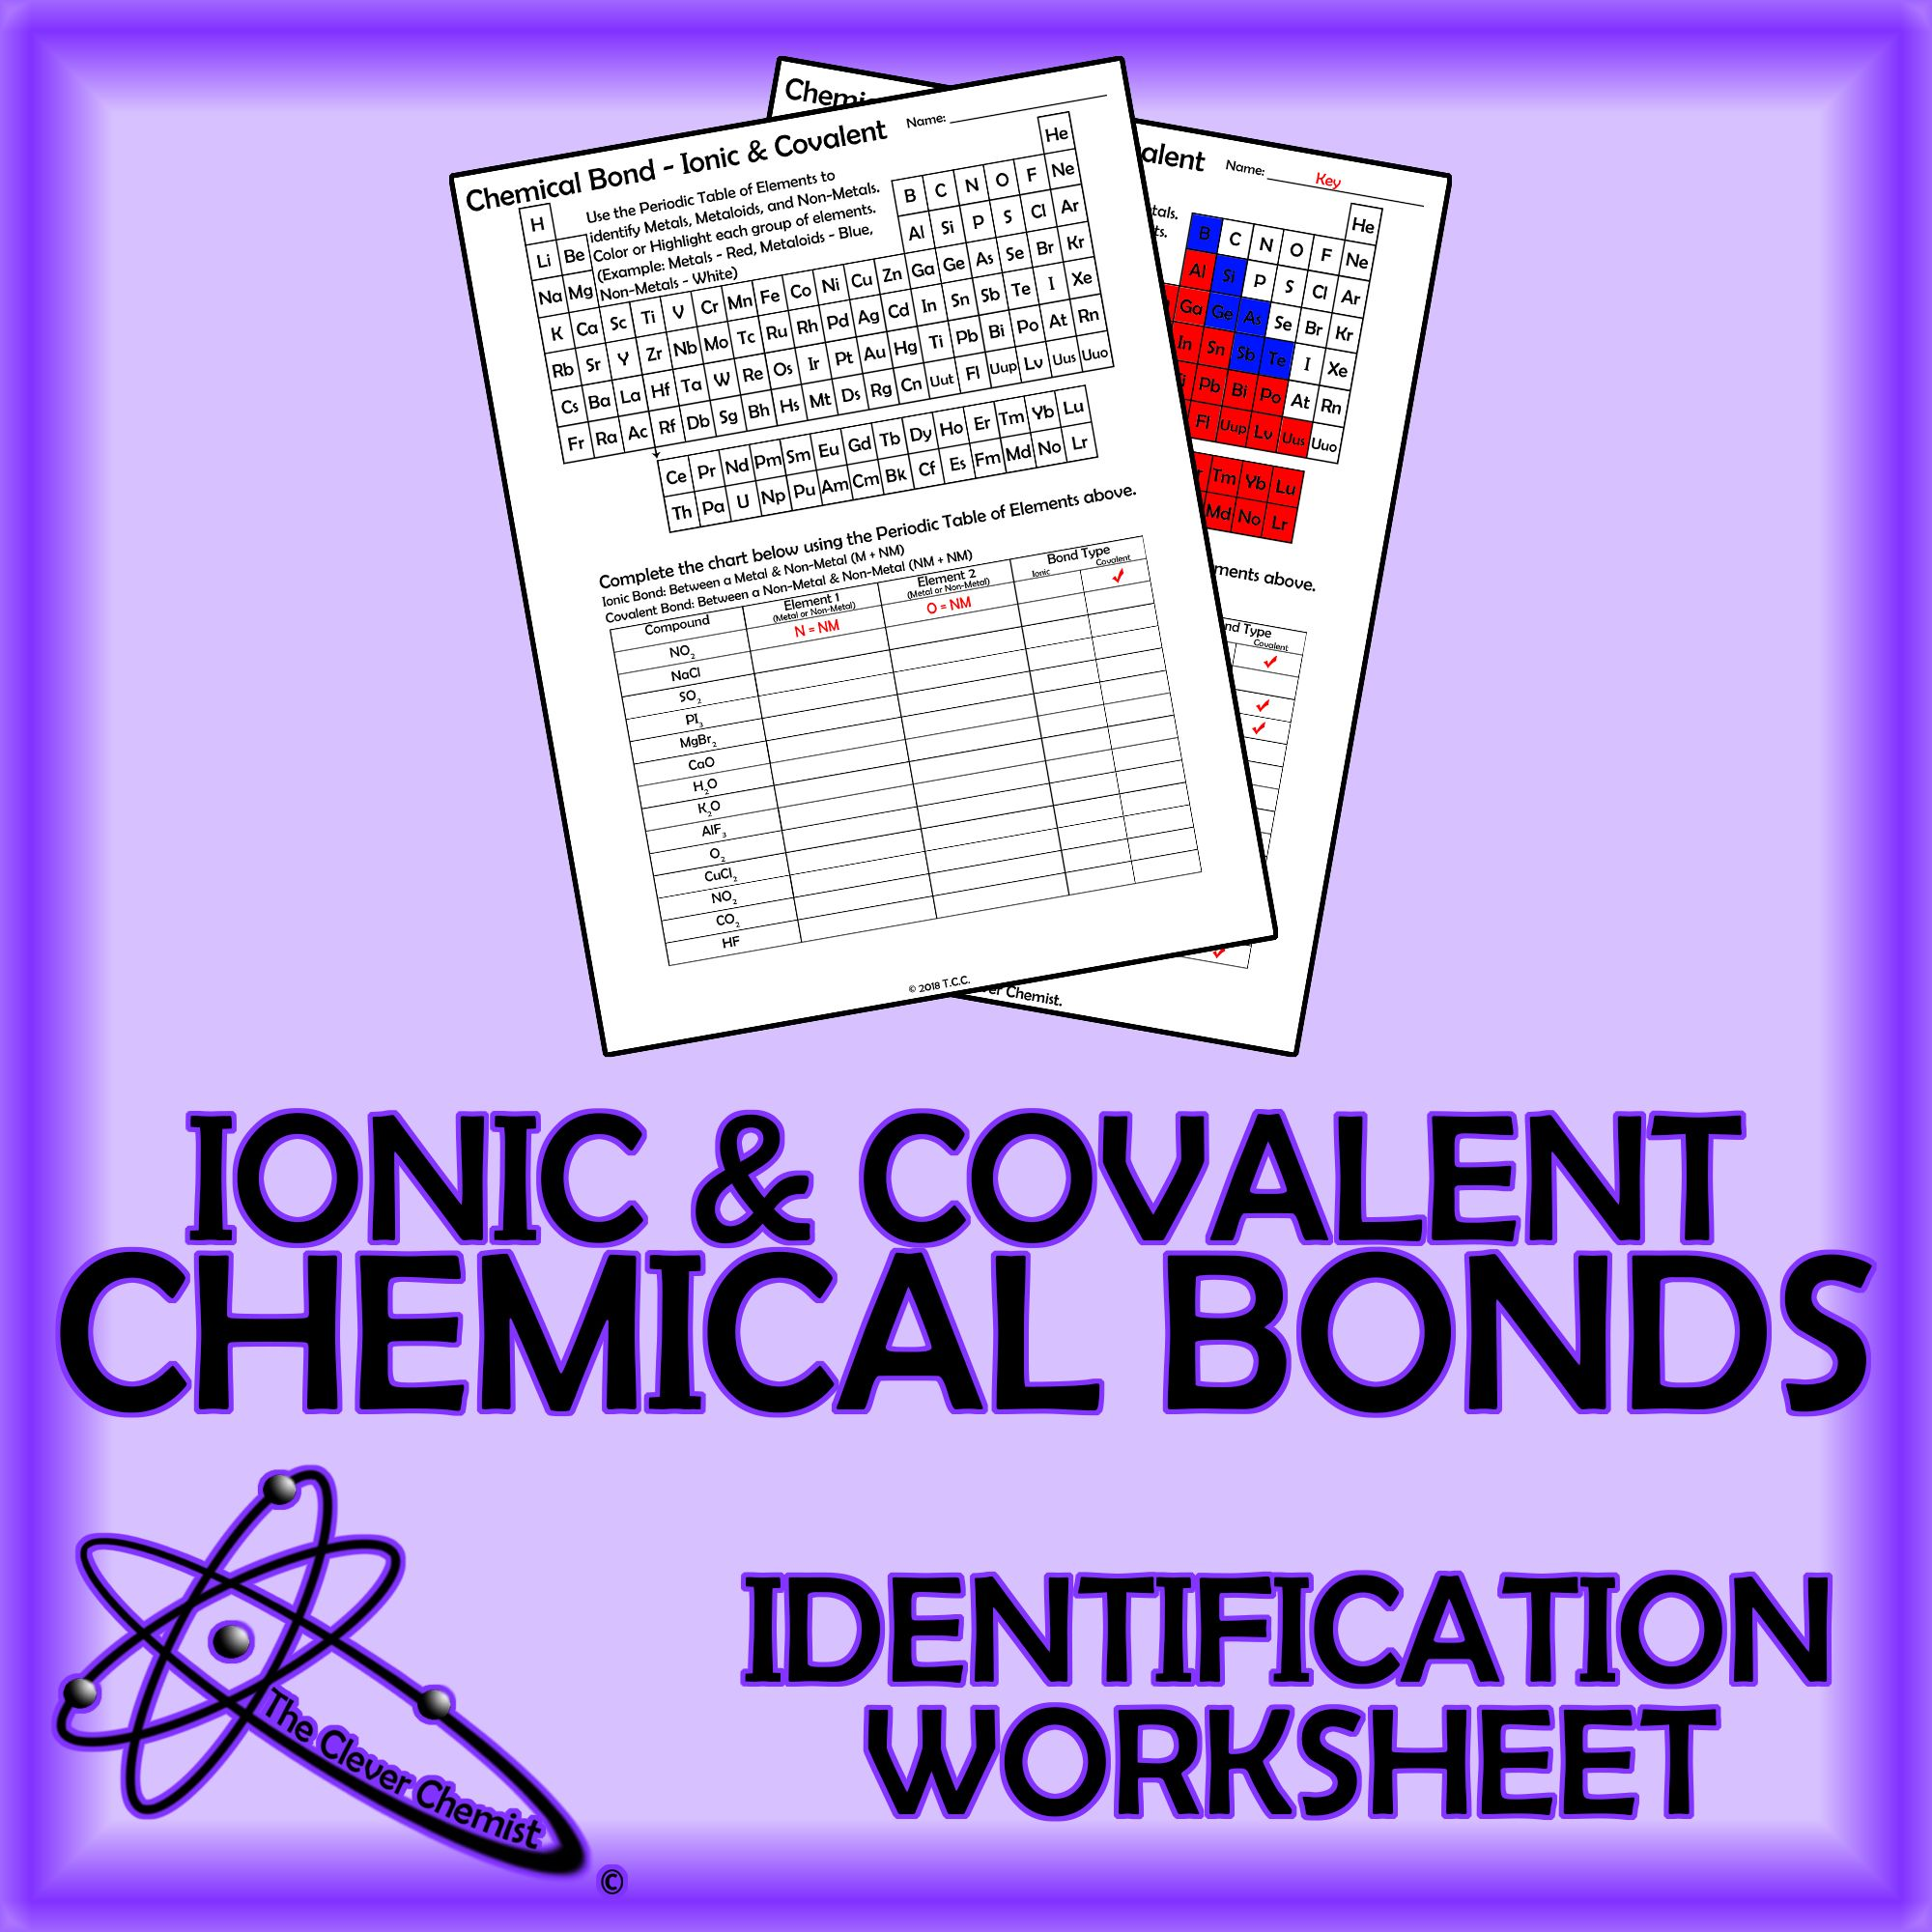 This Is A One Page Worksheet Covering Identification Of